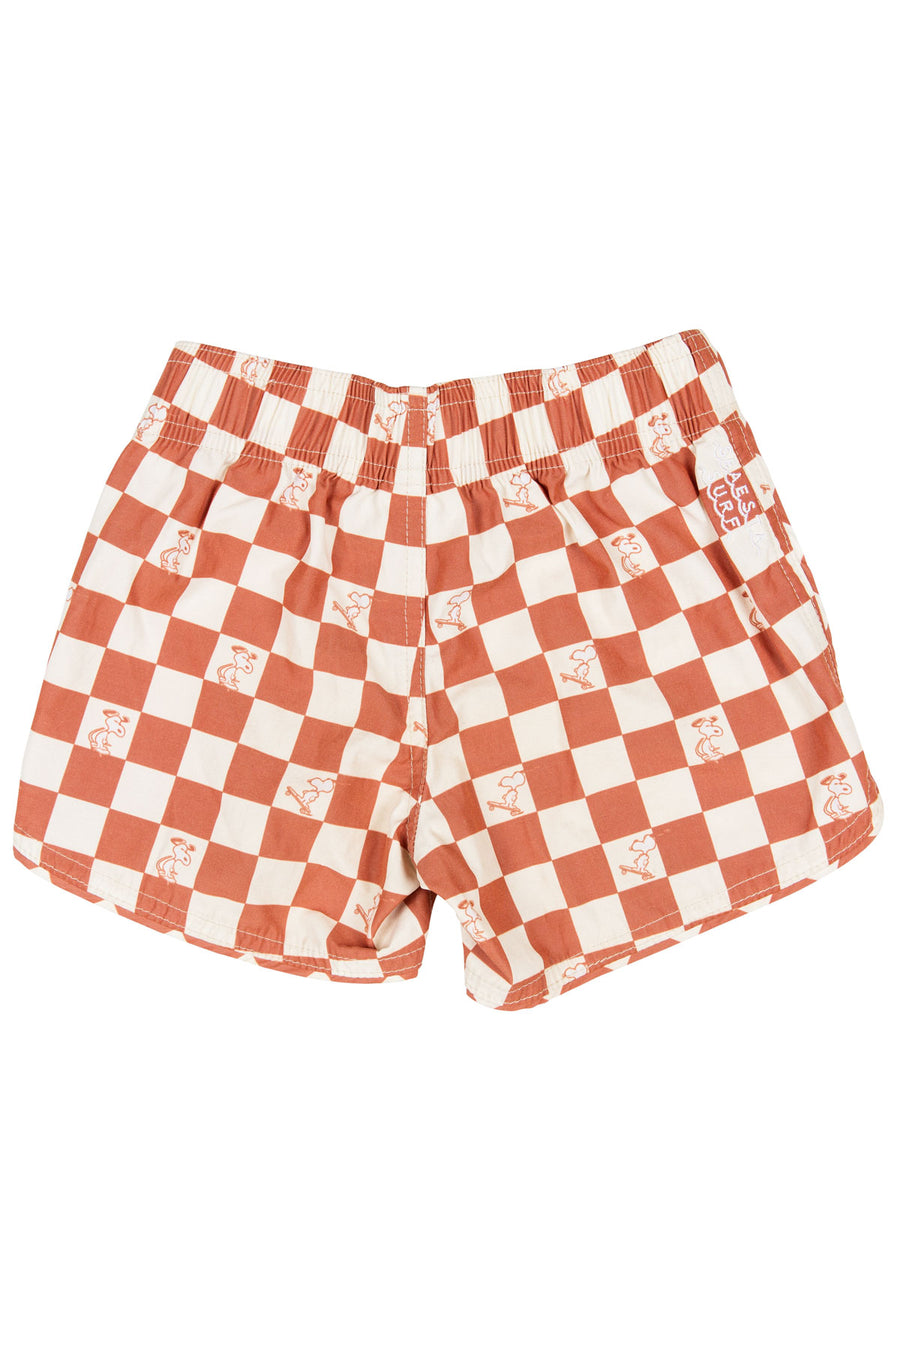 Seaesta Surf x Peanuts® Checkerboard Boardshorts / Burnside Terracotta